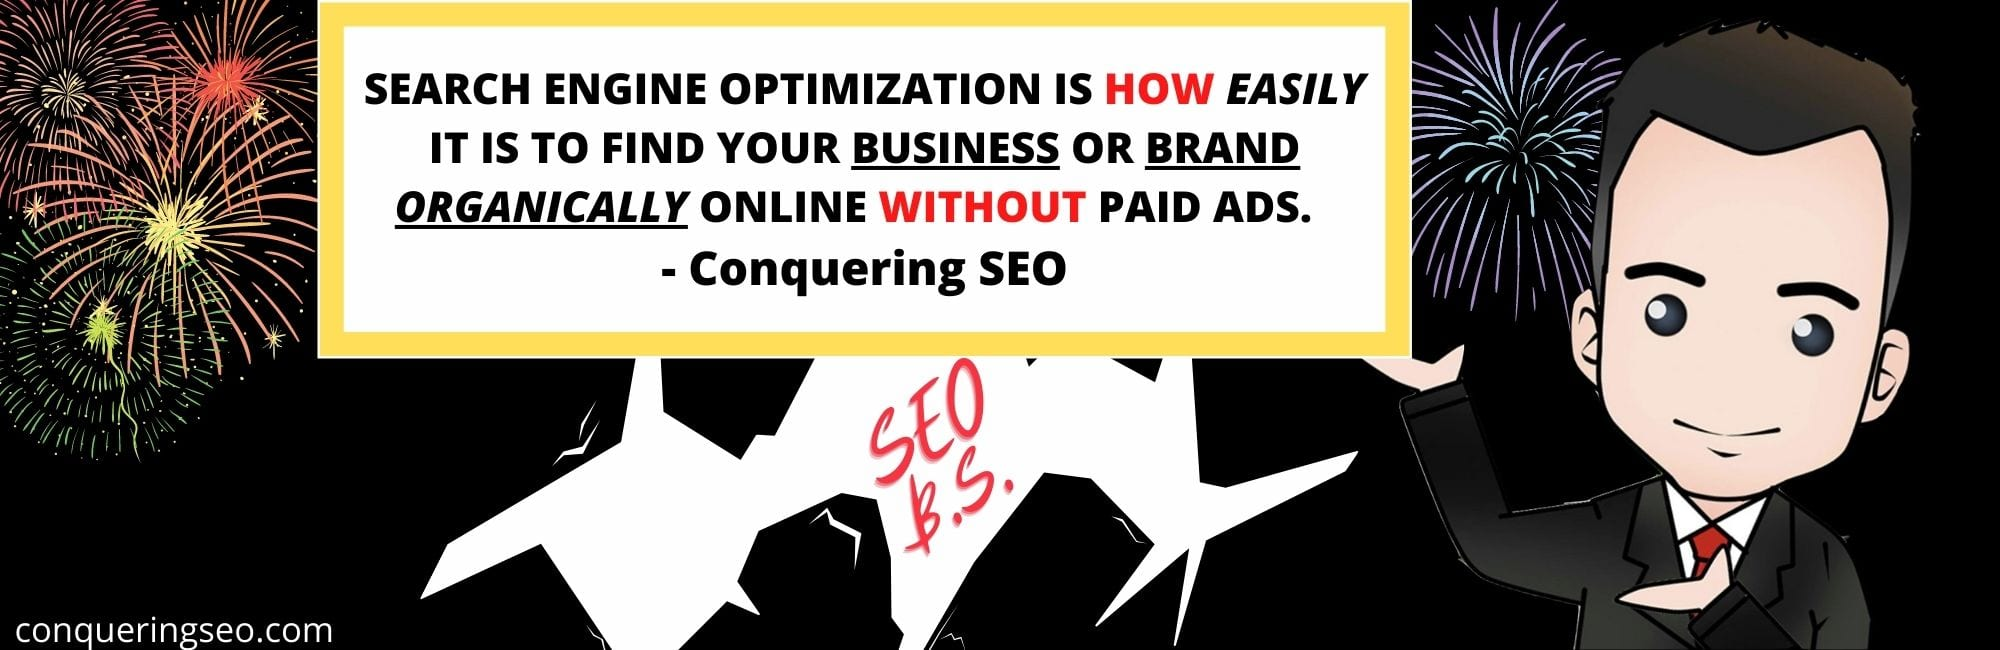 picture of What SEO Means by conquering seo